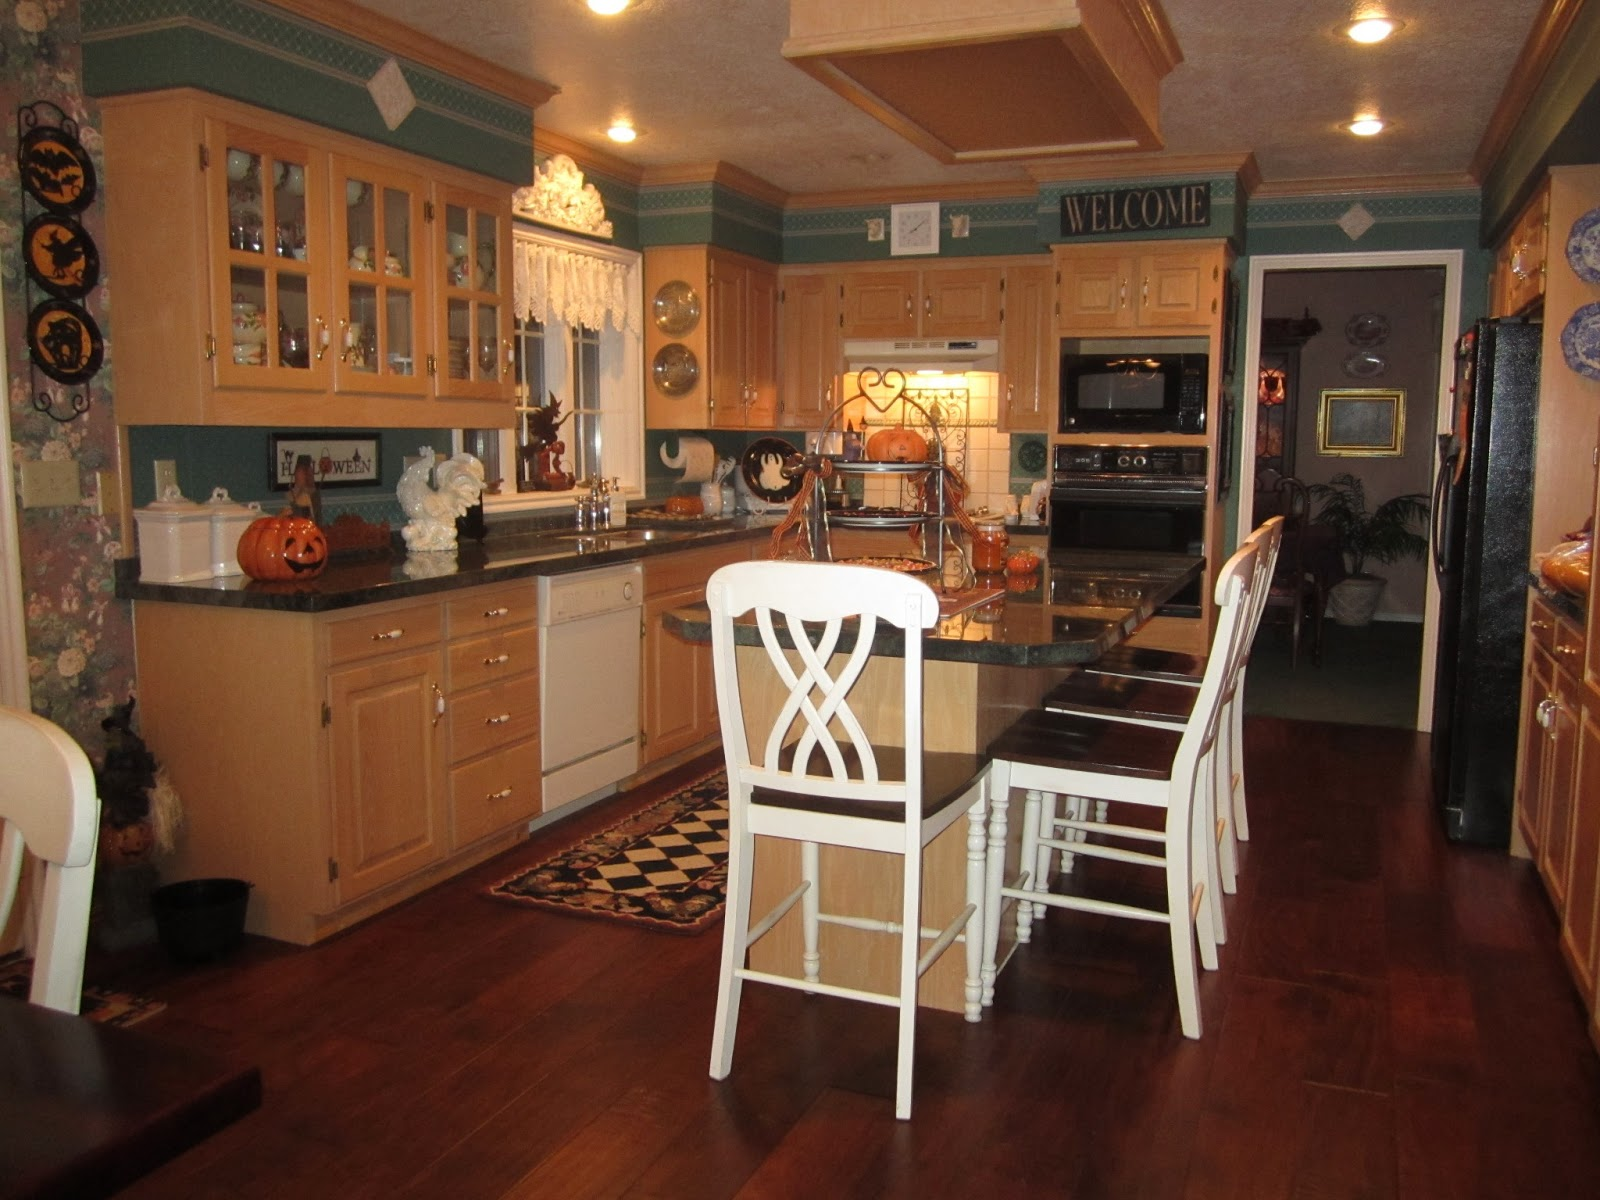 Saving space in the kitchen tips 2278 house decor tips for Save space kitchen